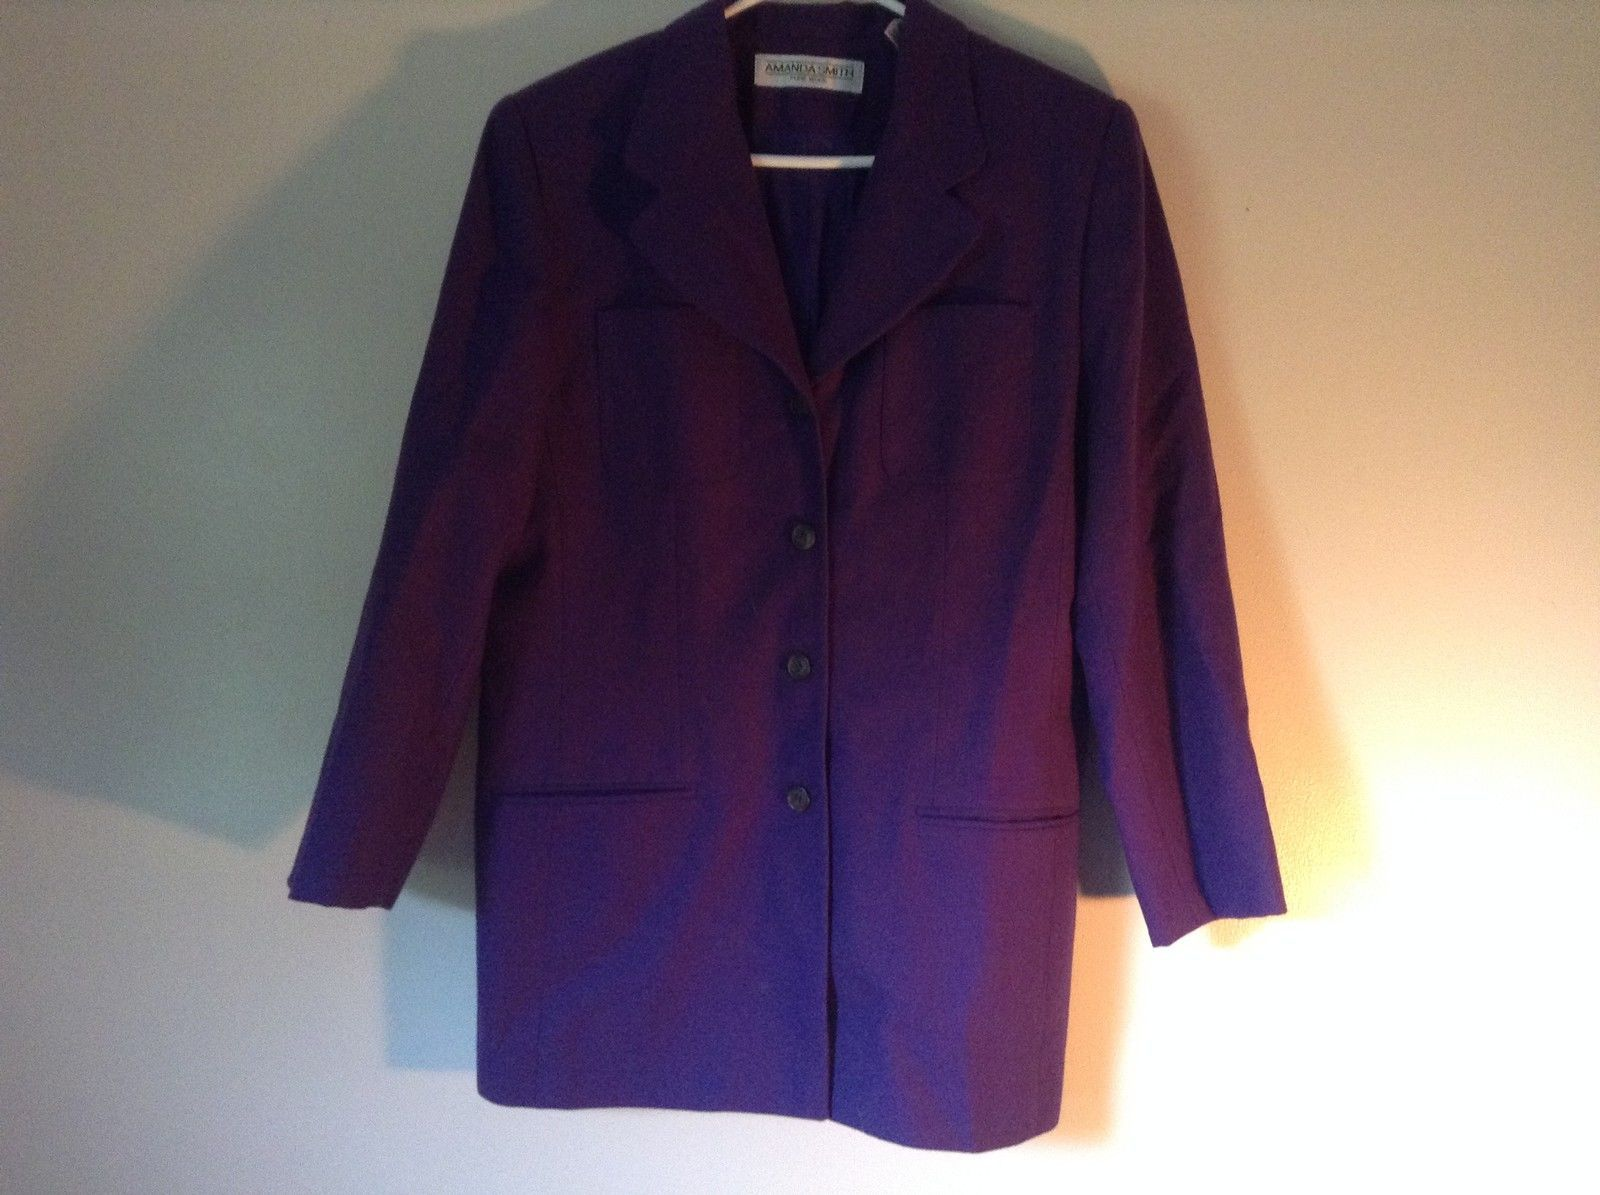 Pure Wool Purple Blazer Jacket by Amanda Smith Padded Shoulders 4 Button Closure